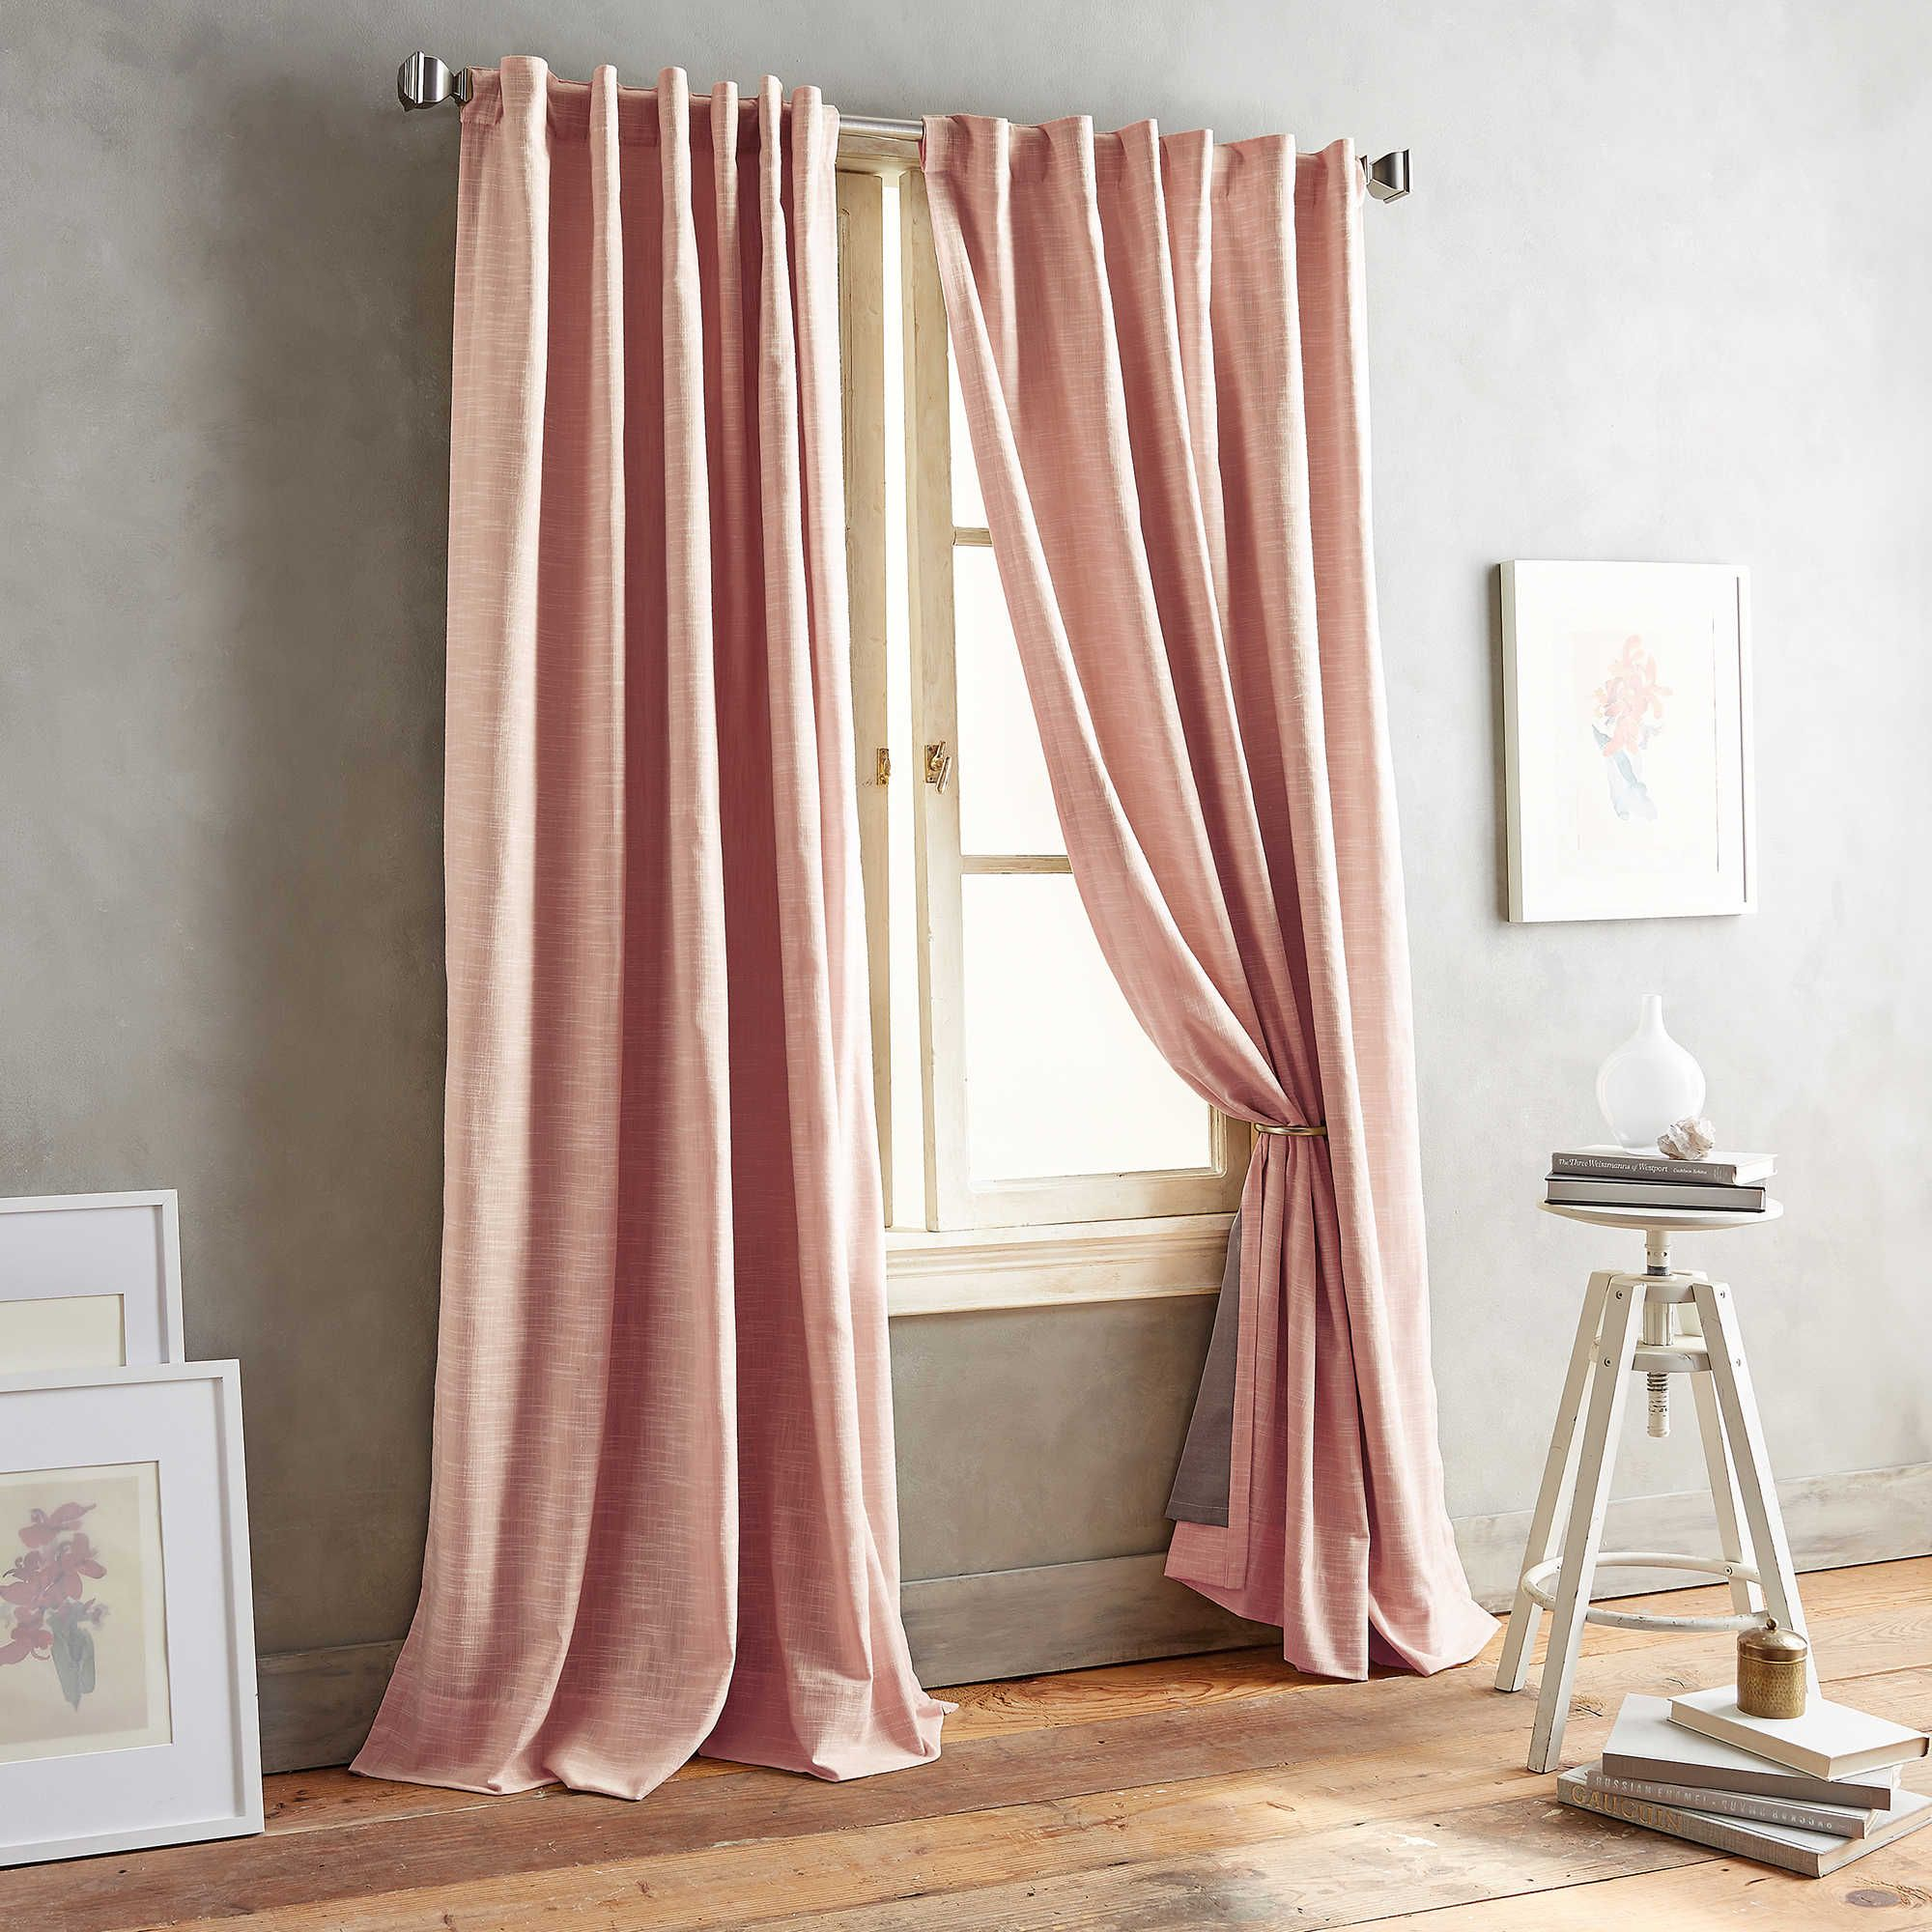 Window treatment ideas for 3 windows in a row  pdp main image  master bedroom  pinterest  window curtains